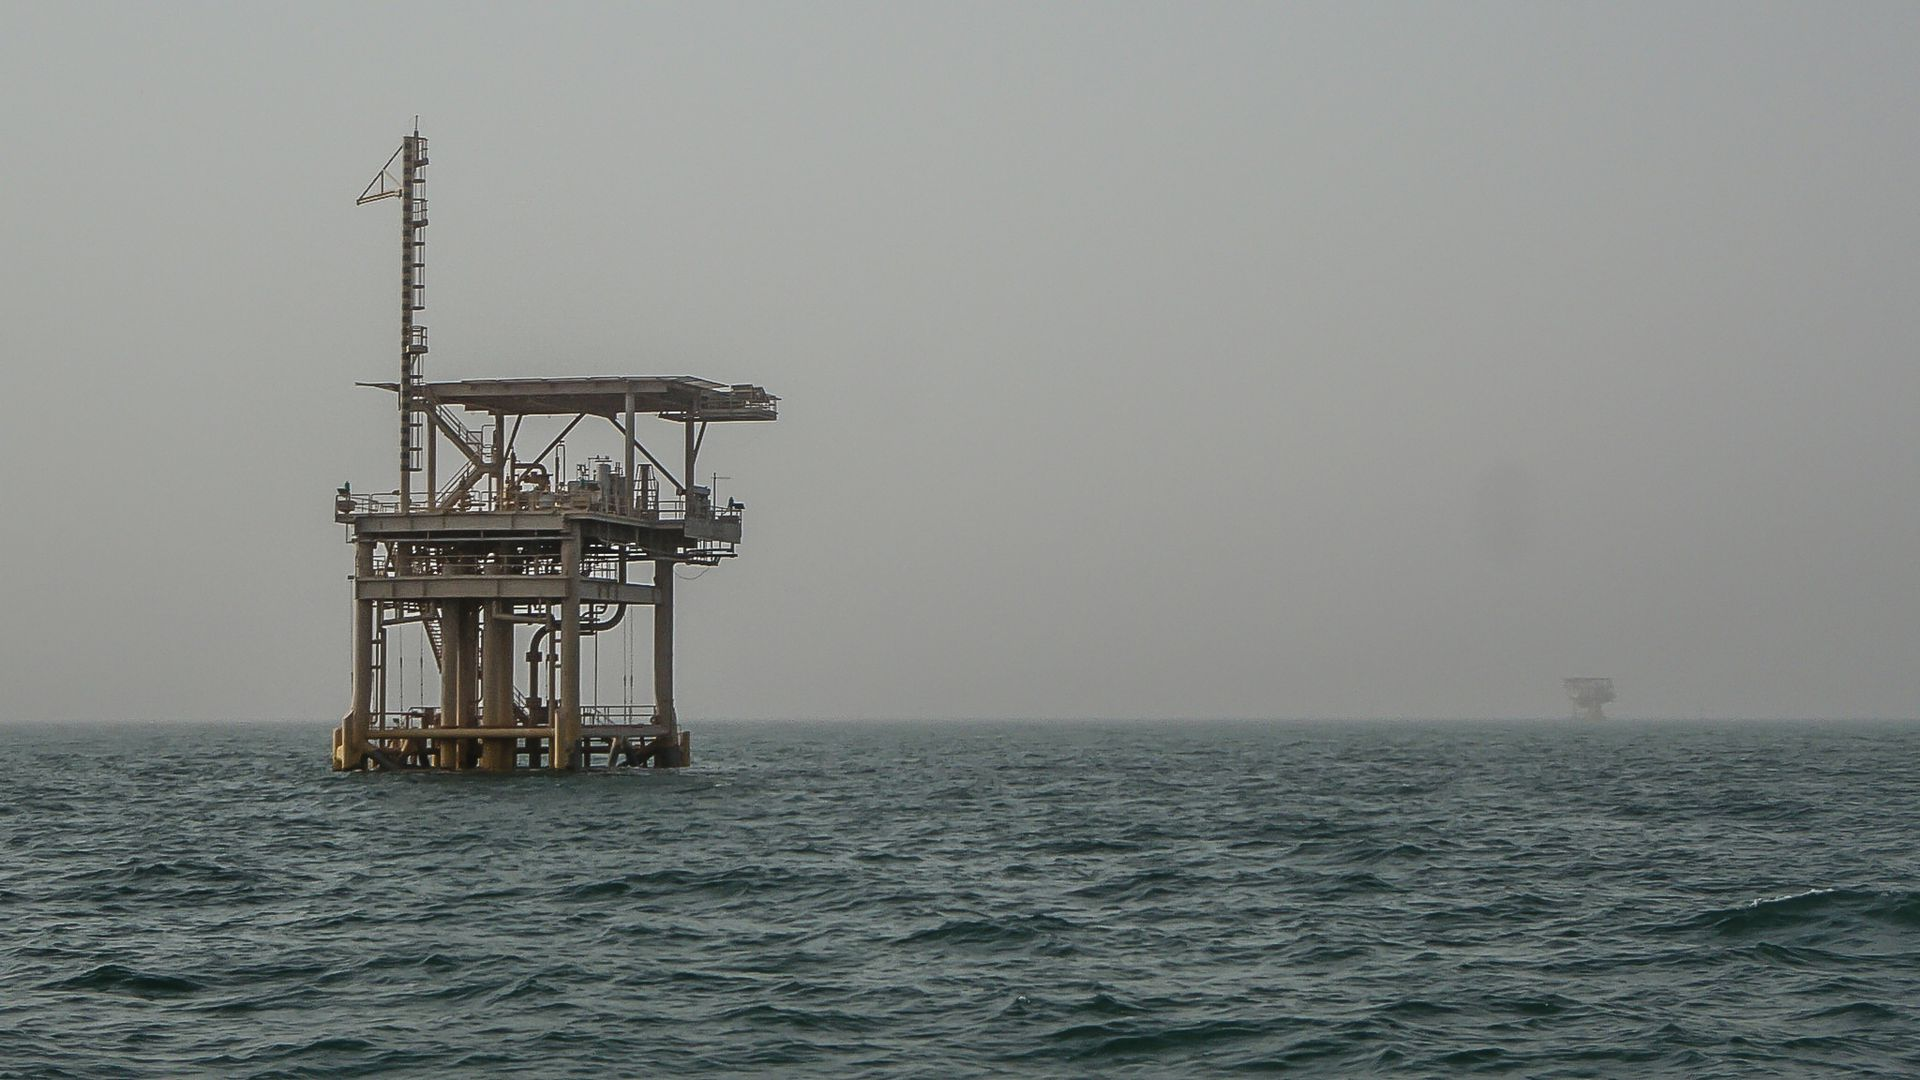 In this image, an oil rig sits in the ocean off the coast of Saudi Arabia.